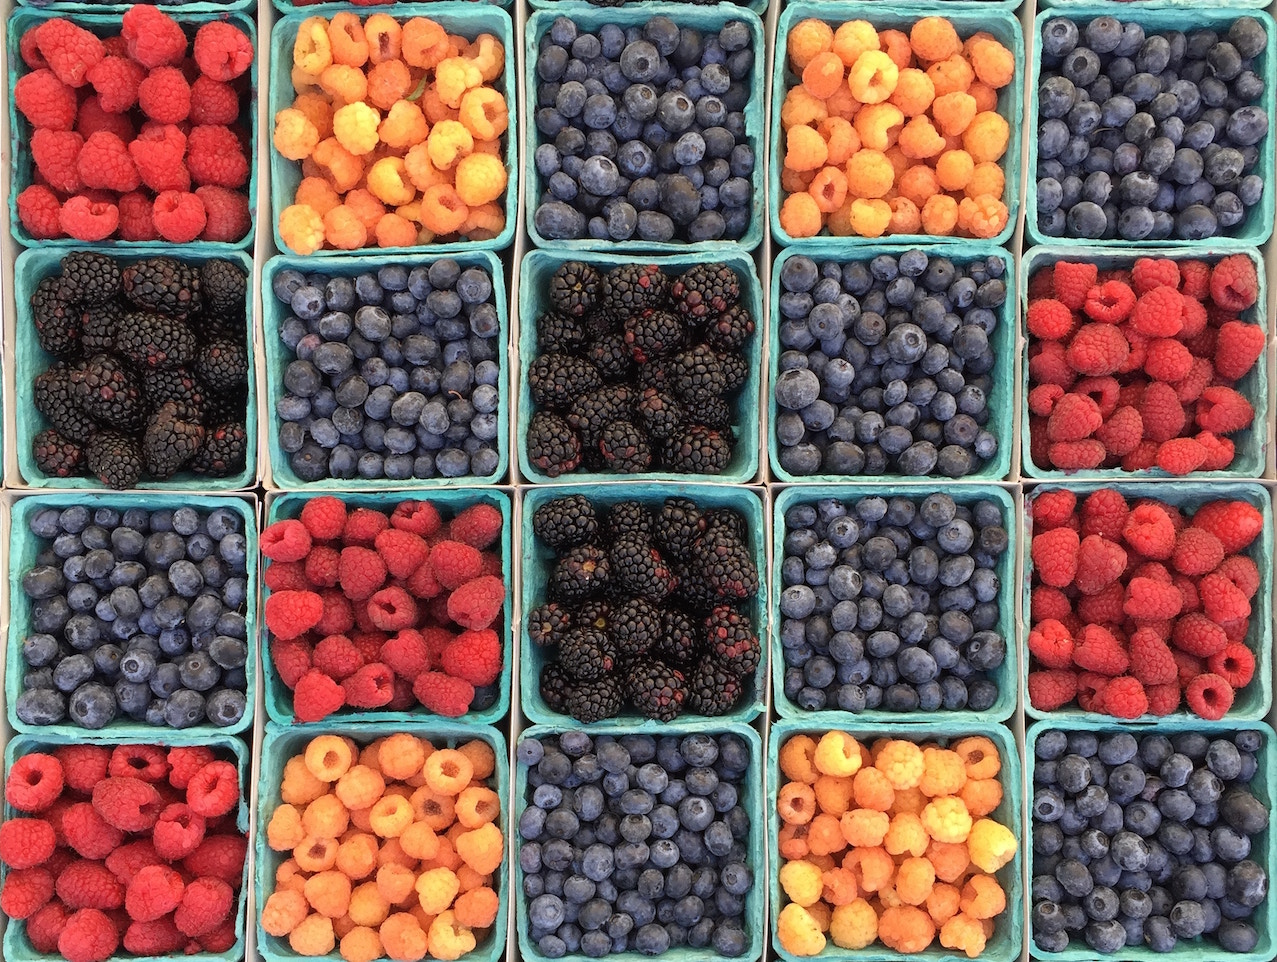 Freezer storage - Pints of fresh berries: How to use up overripe fruit